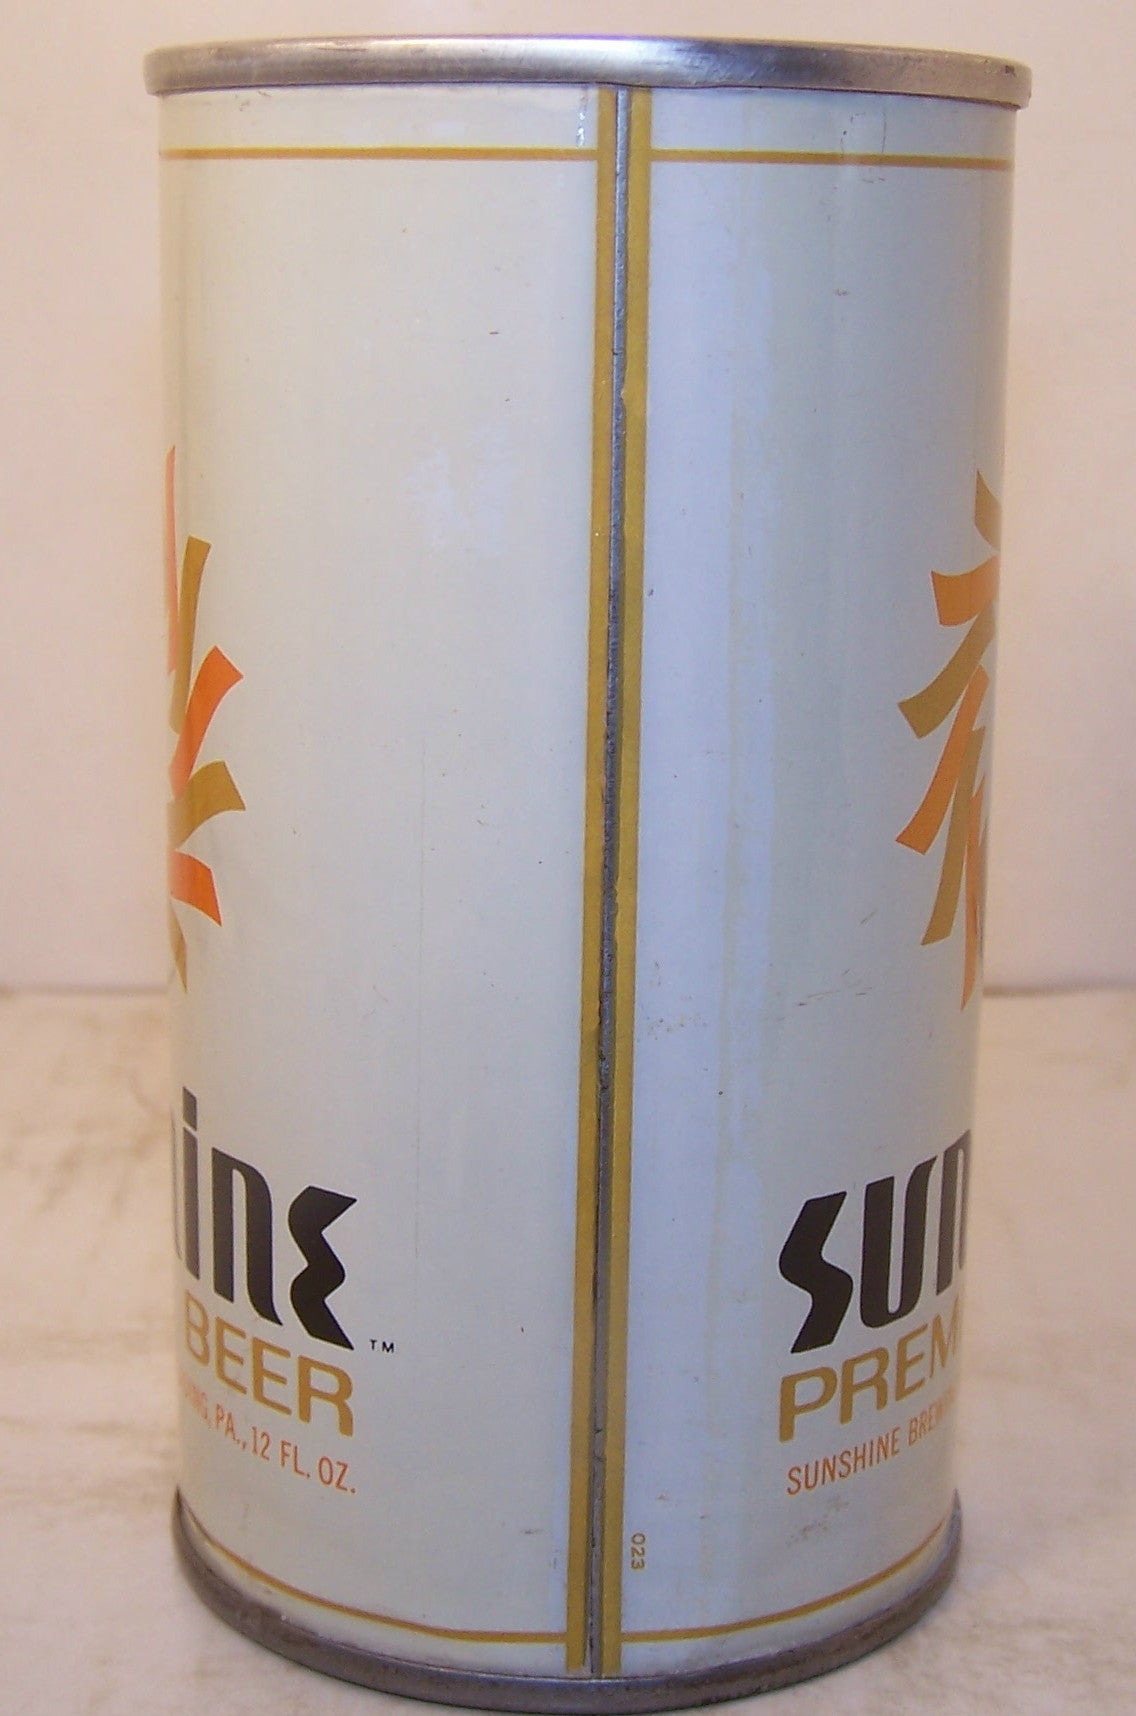 Sunshine Premium Beer, USBC II 129-24. Grade 1/1- Sold on 2/8/15